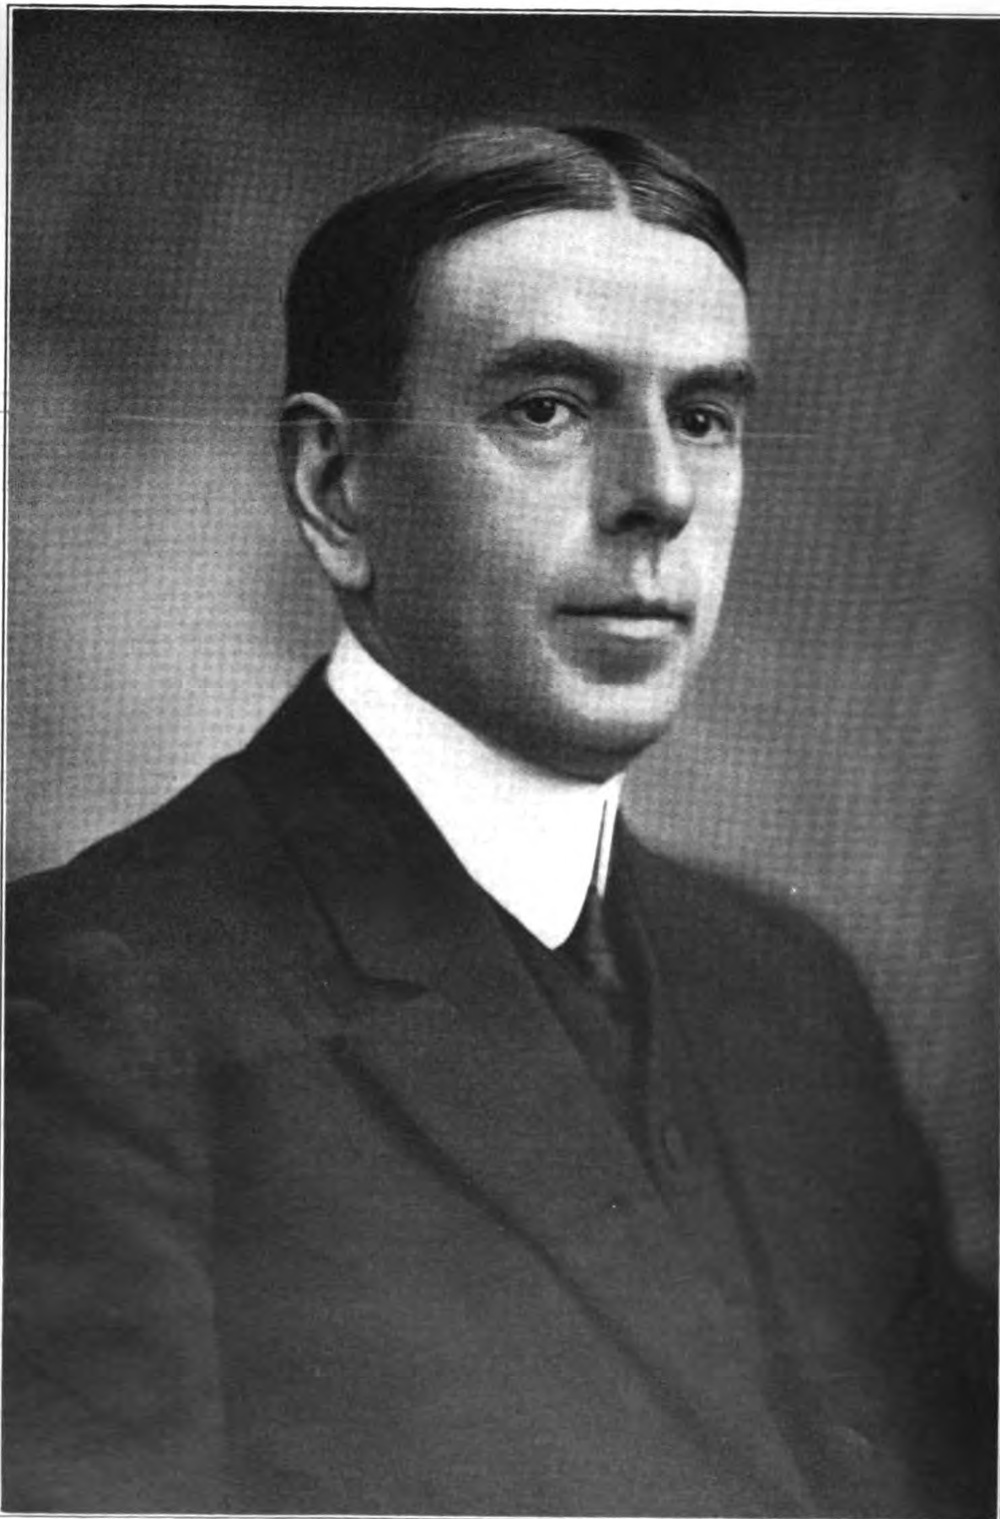 William Bayard Hale in 1914